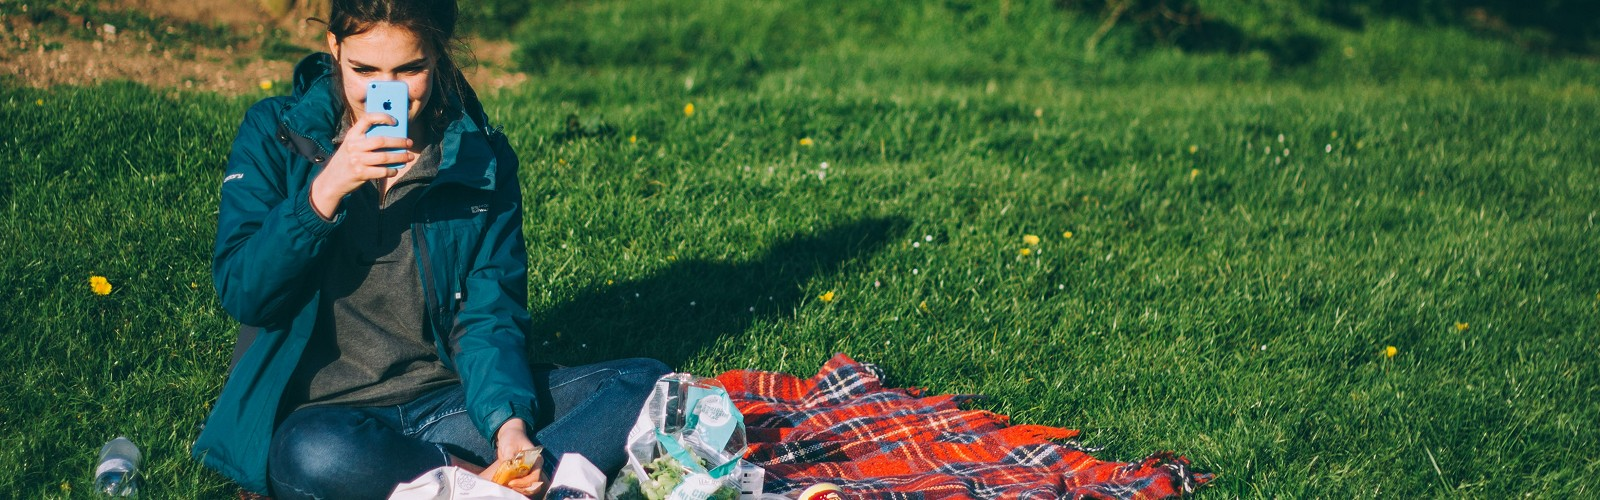 woman sitting on blanket having a picnic (image: Luke Porter on Unsplash)